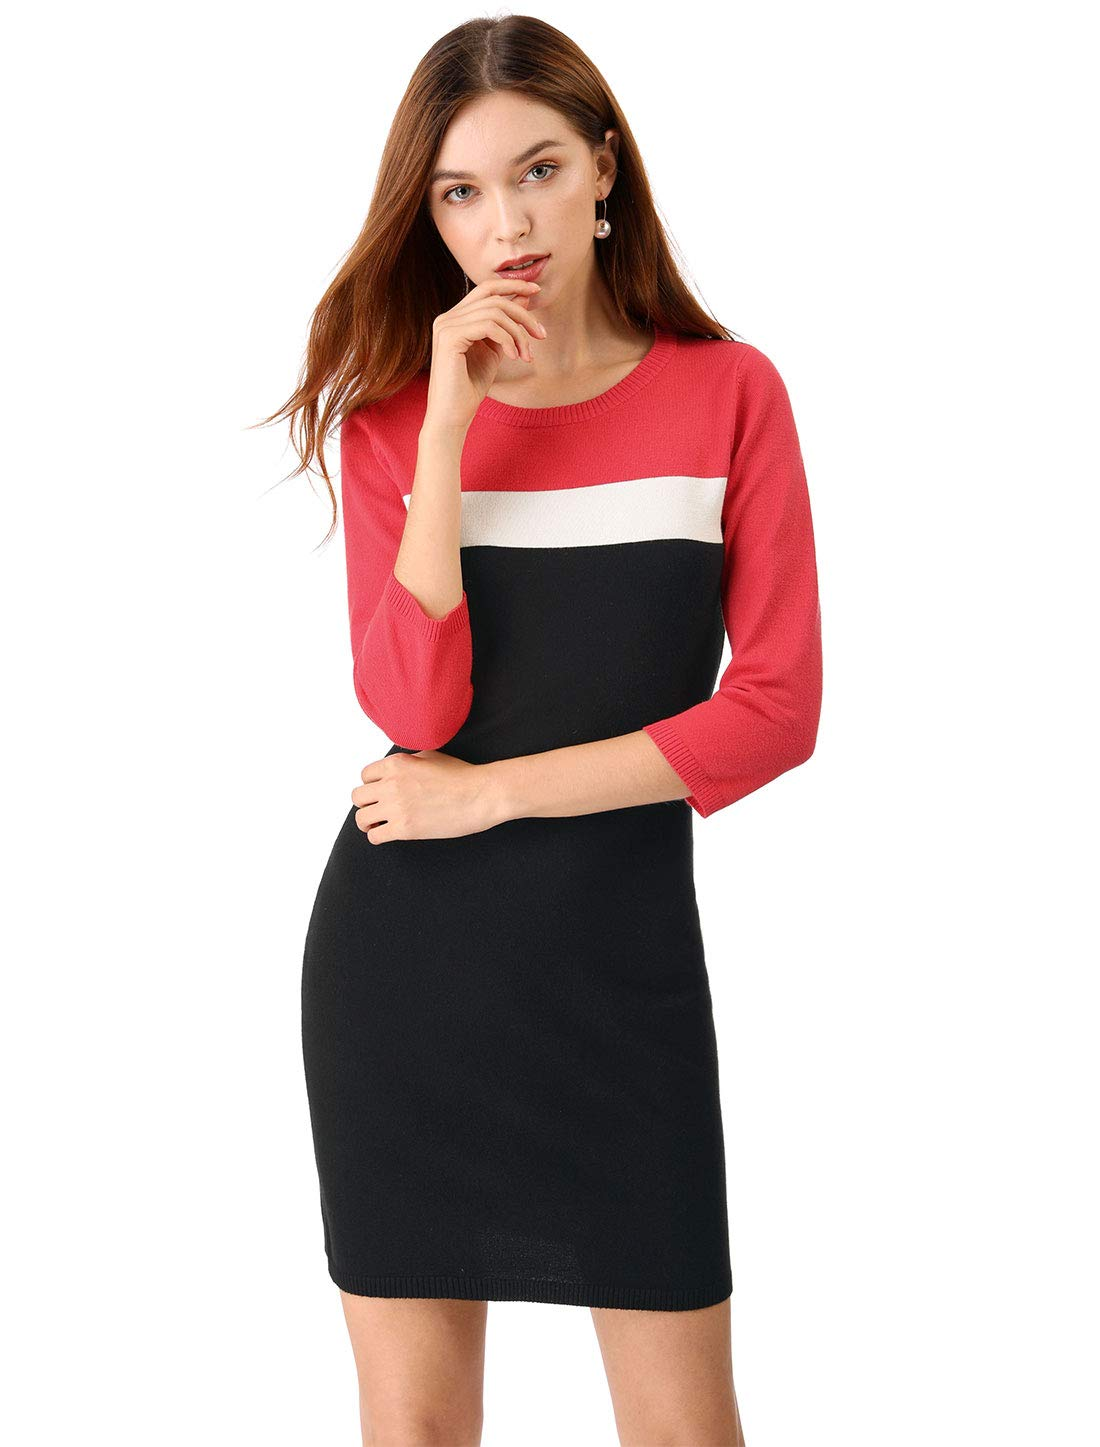 Allegra K Women's Crew Neck Color Block Stretched Bodycon Knitted Sweater Dress